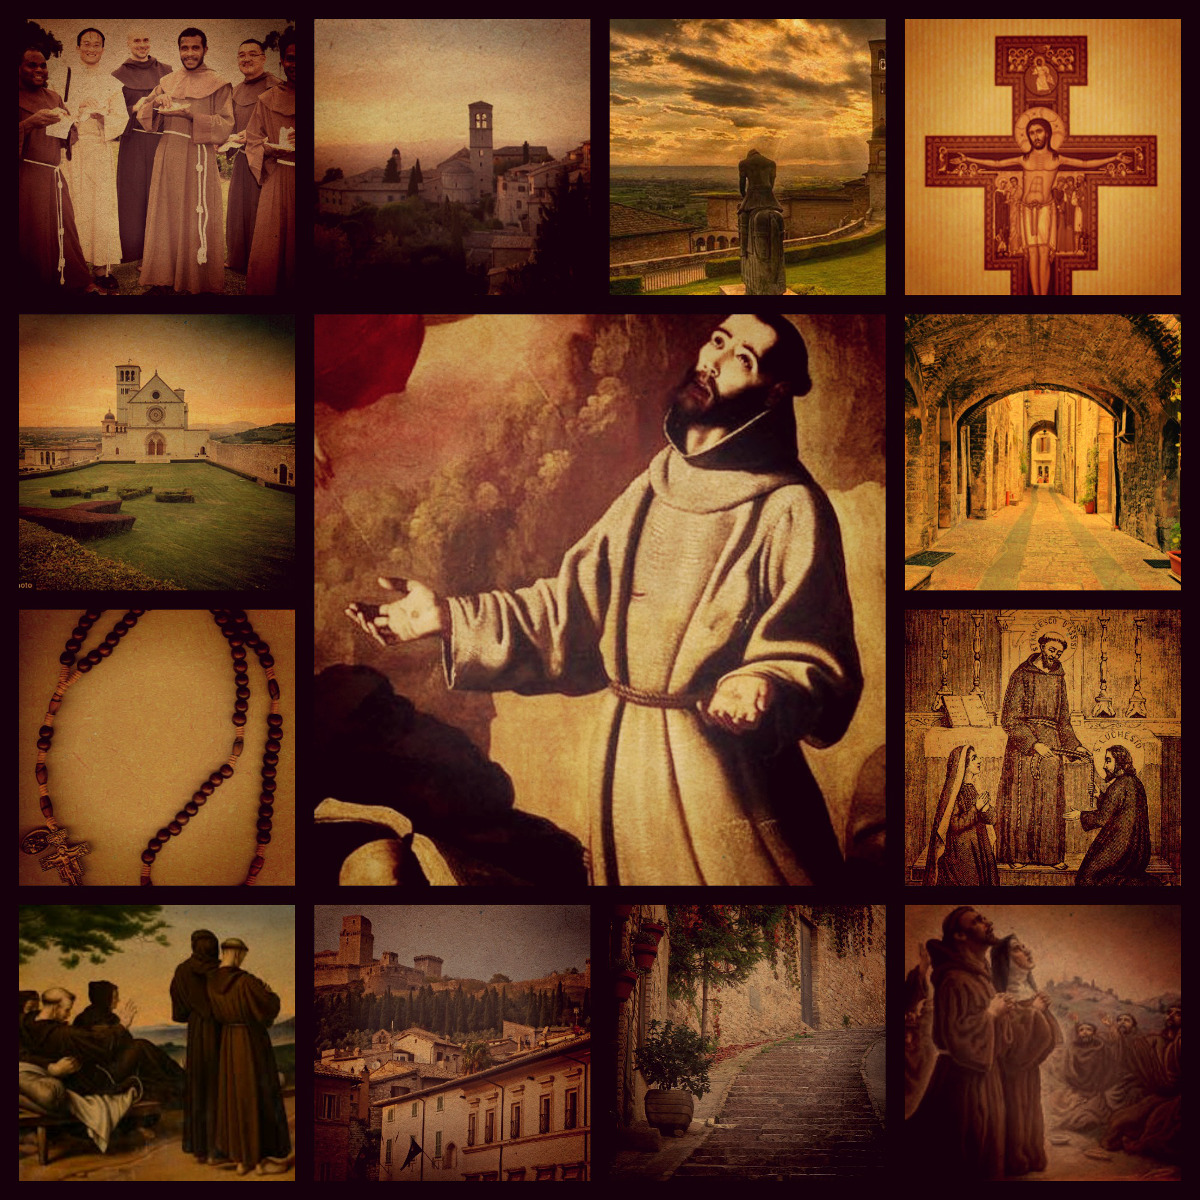 St. Francis collage for Pilgrims